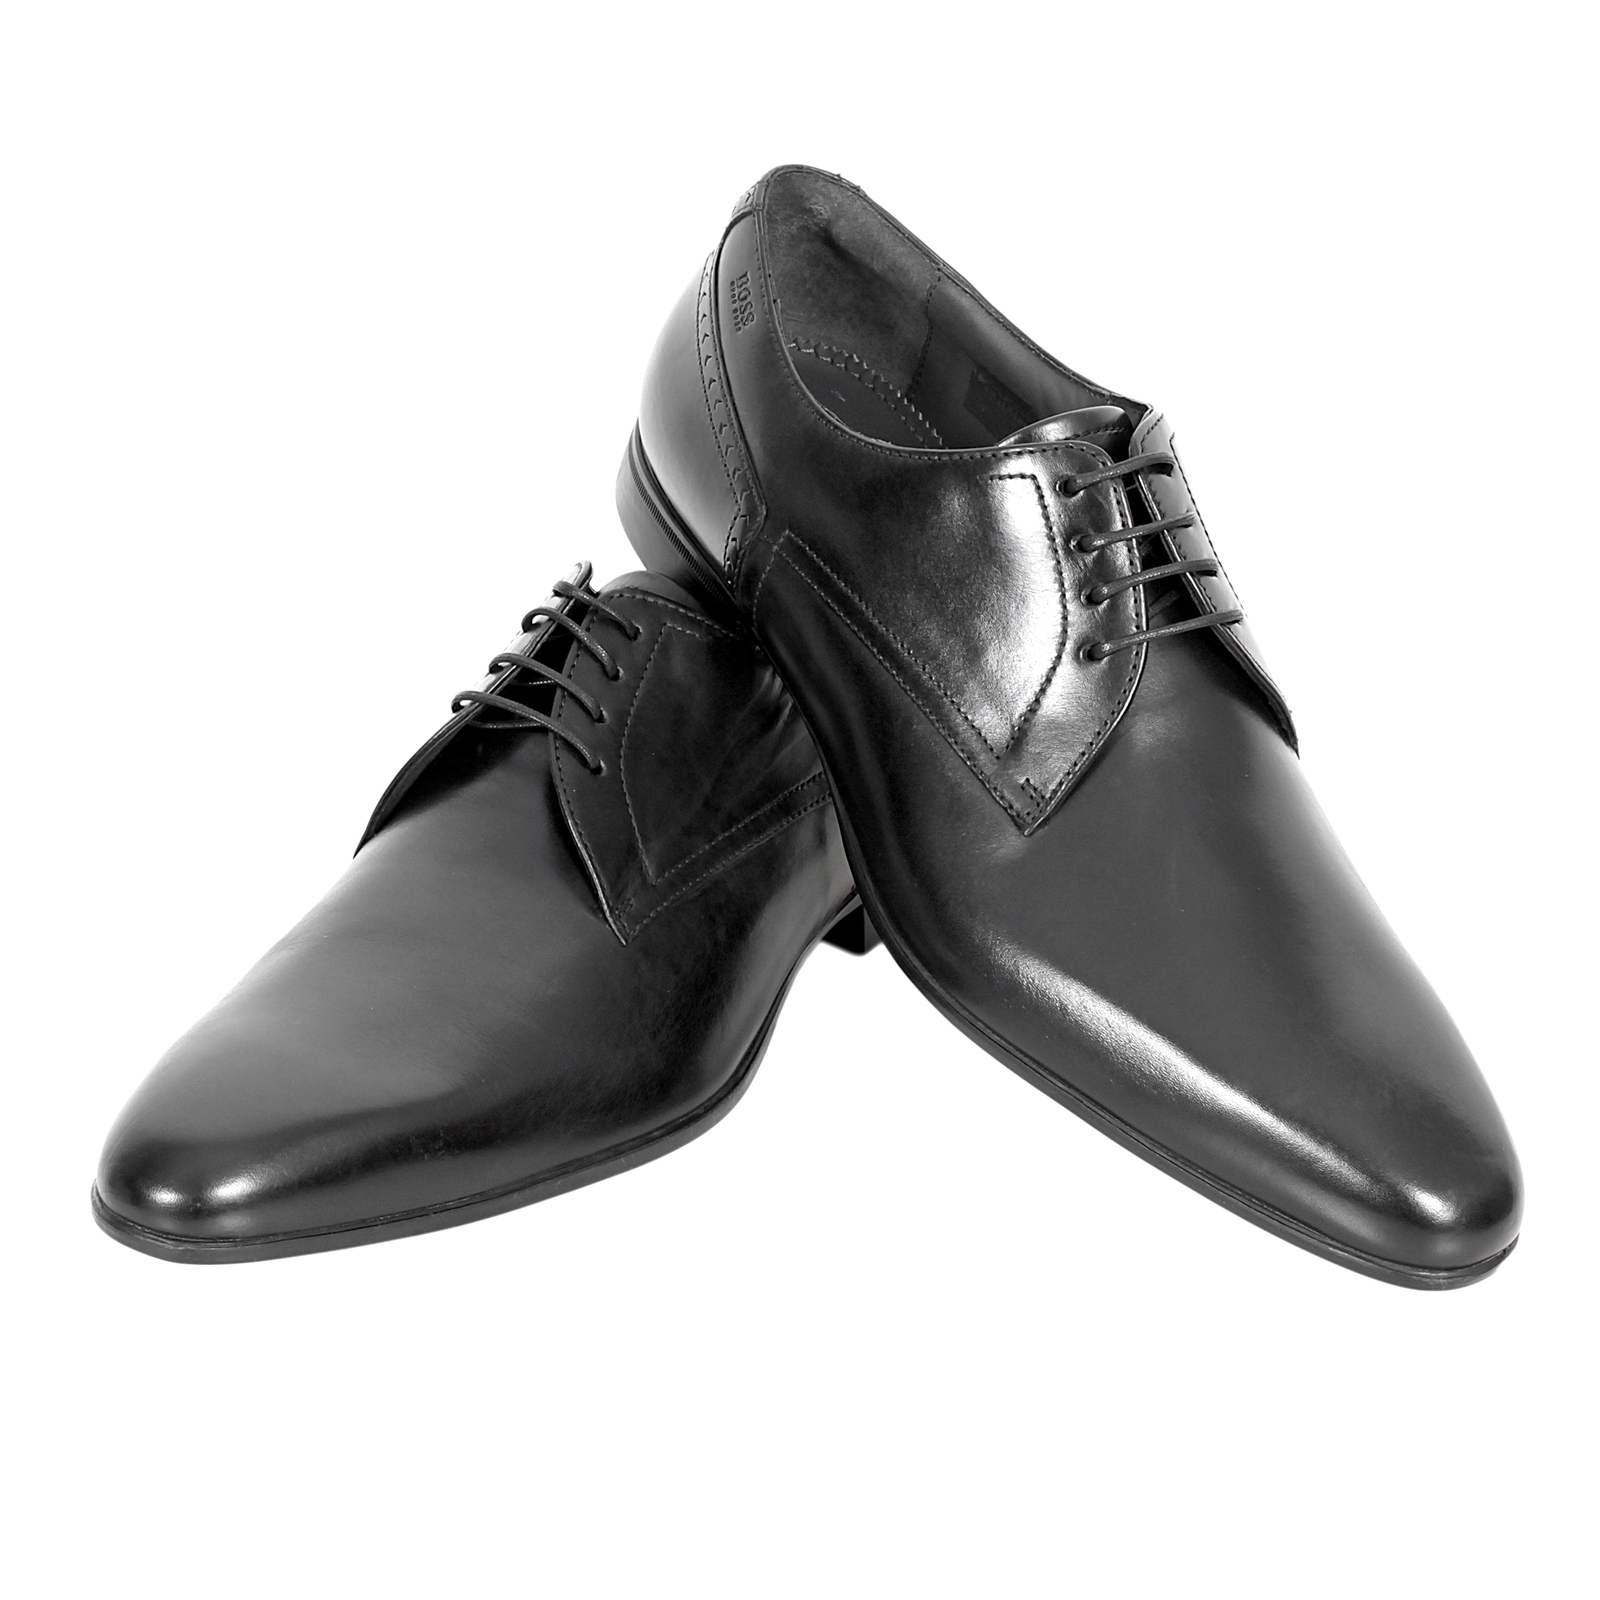 Hugo Boss shoes black leather dress shoes Neviol 50271593 ...